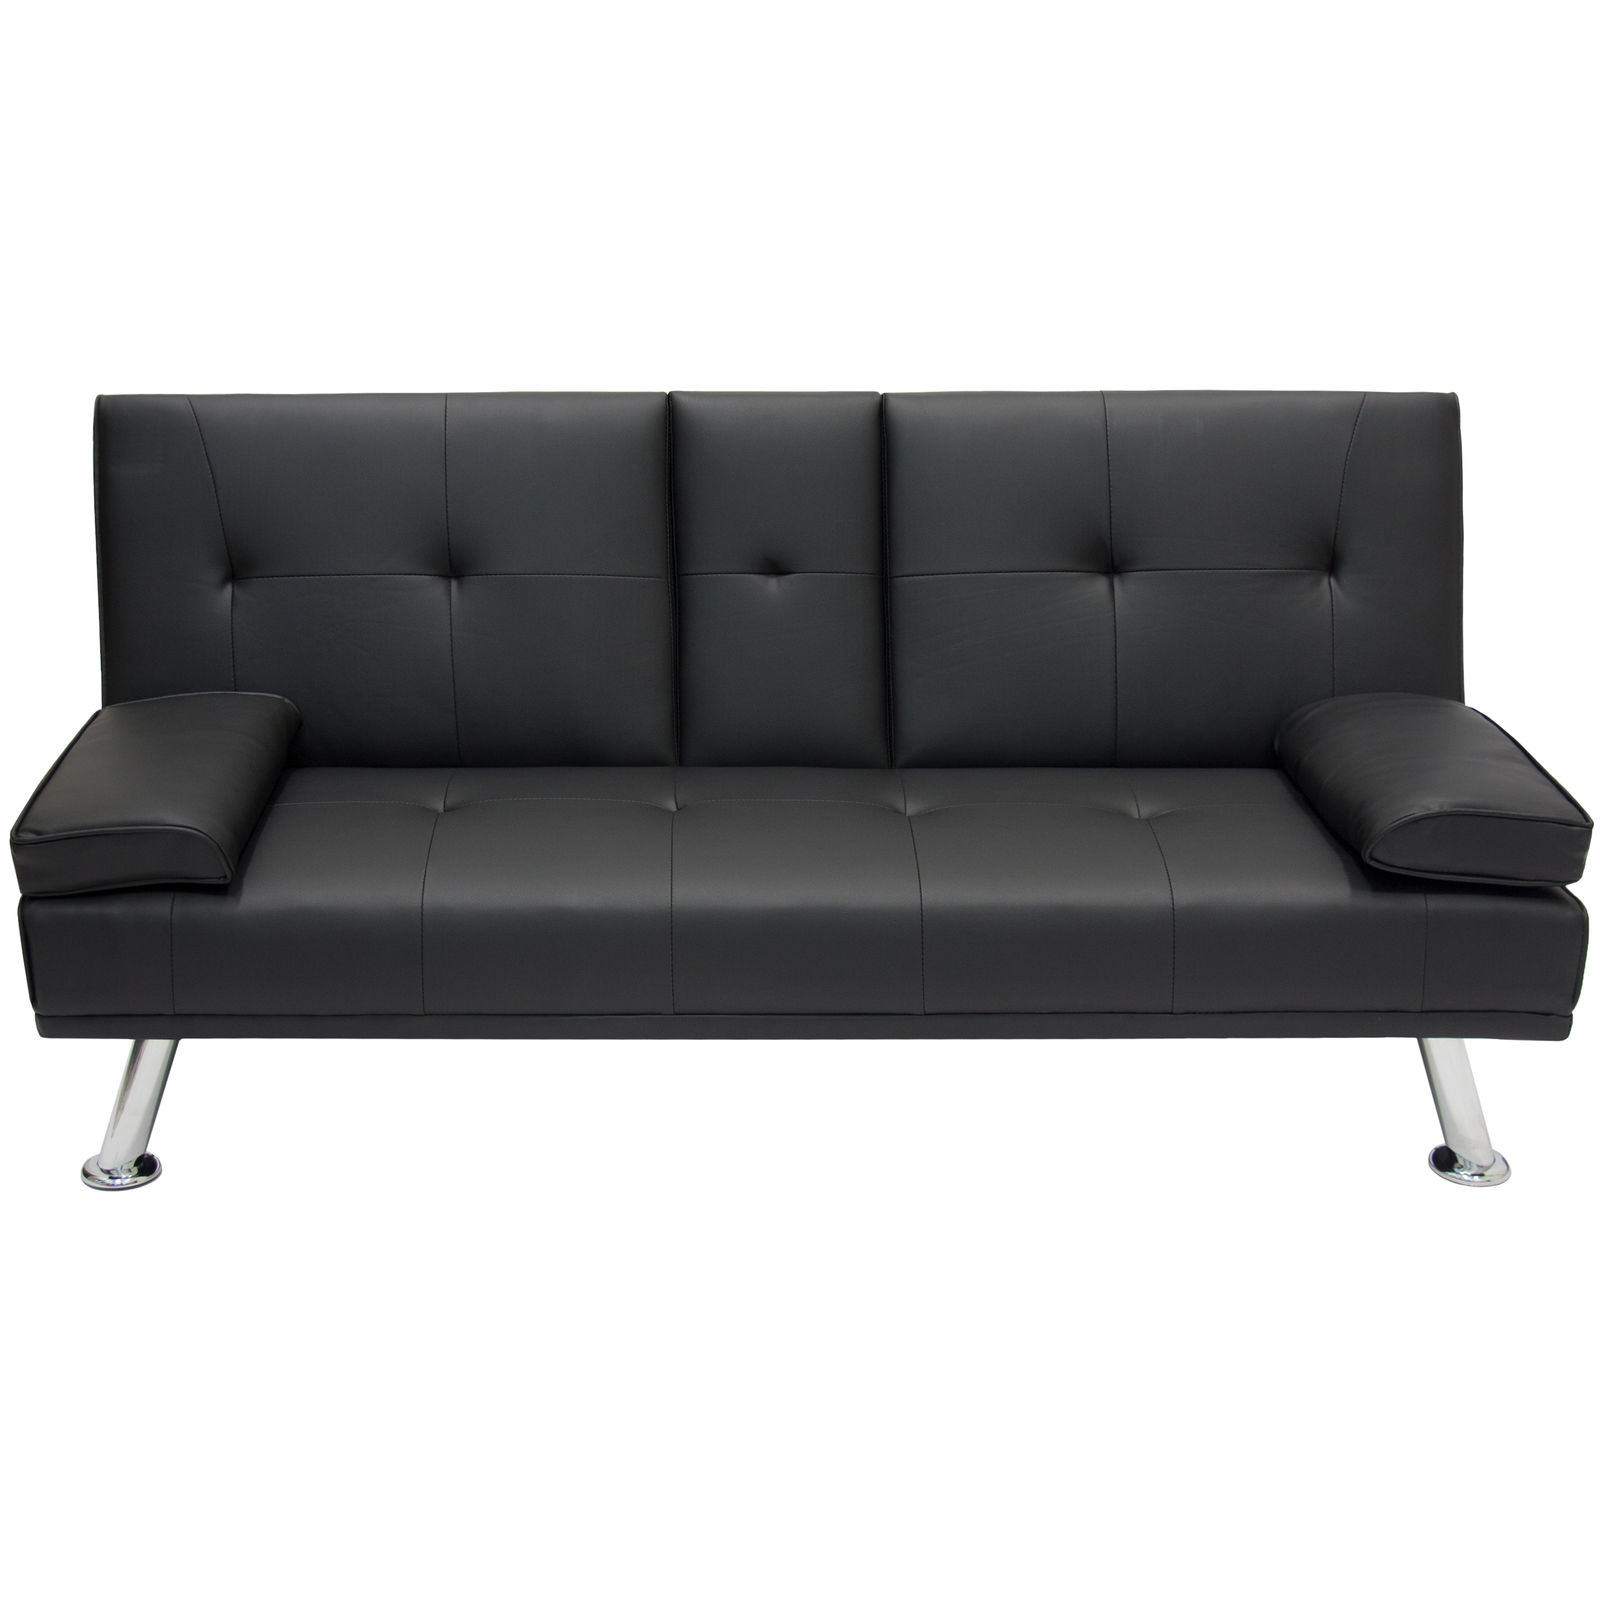 New Deluxe Futon Sofa Bed Couch Cup Holders Sfwf Sfbf As